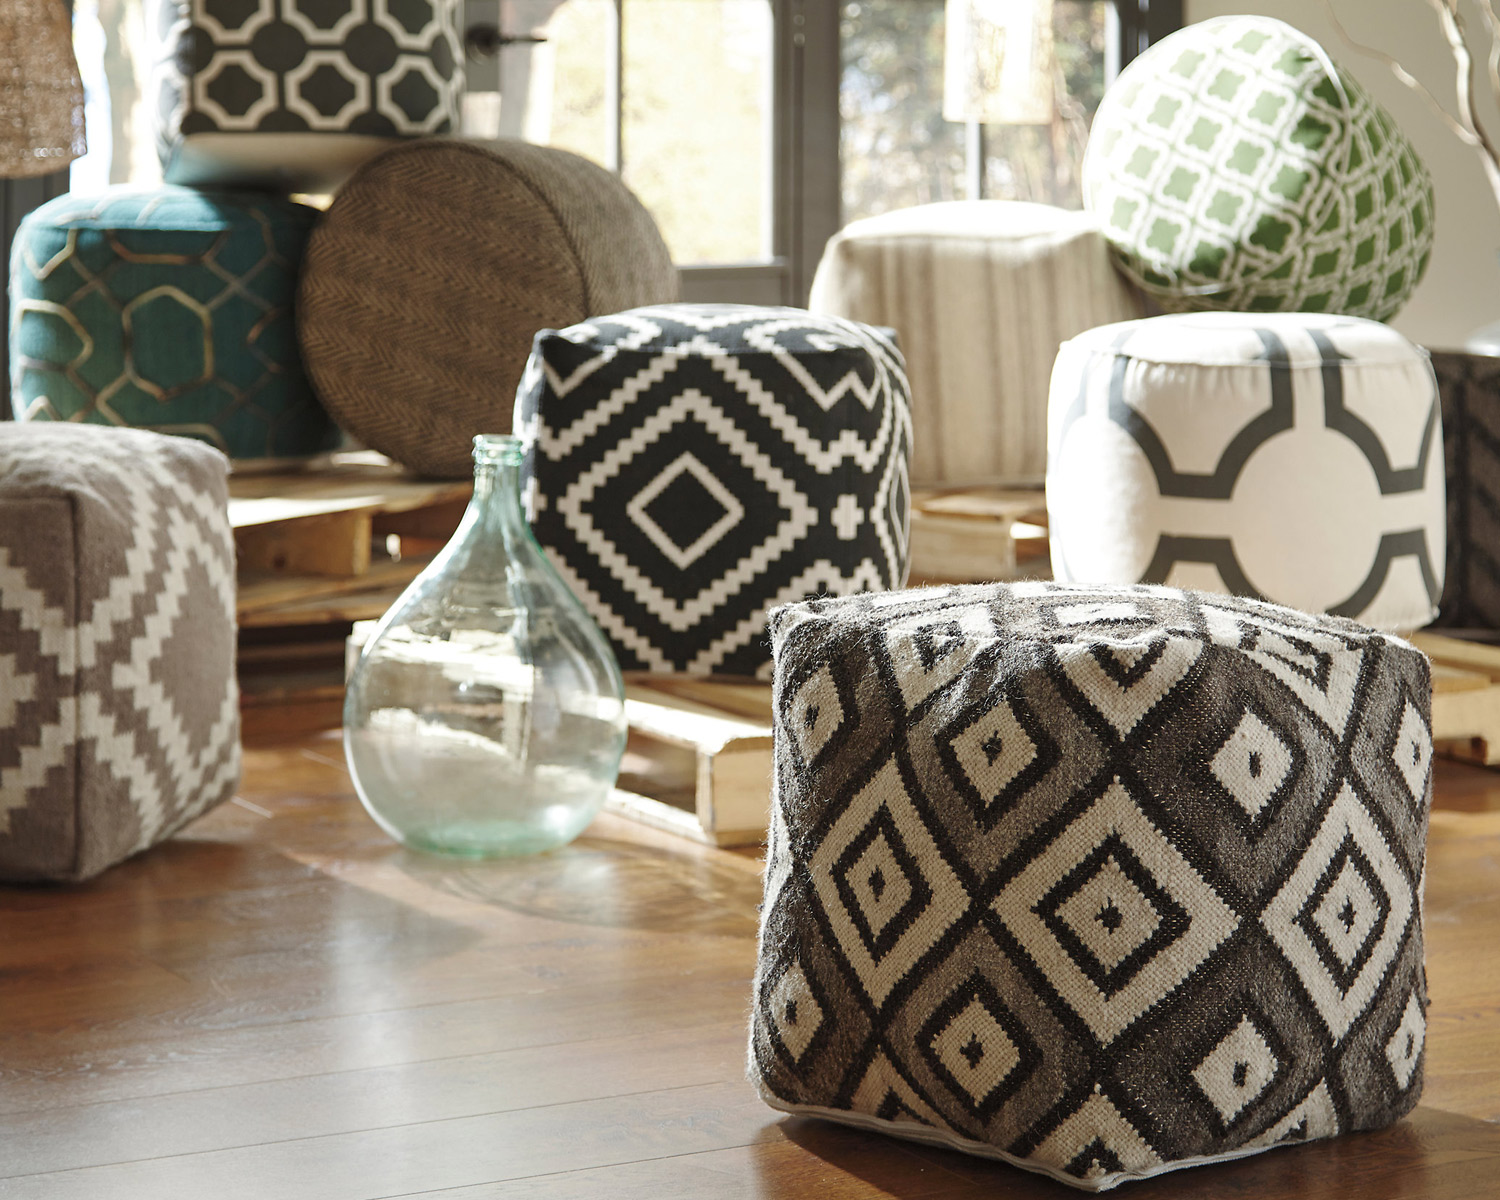 great tips  ideas for decorating with pouf ottomans - may